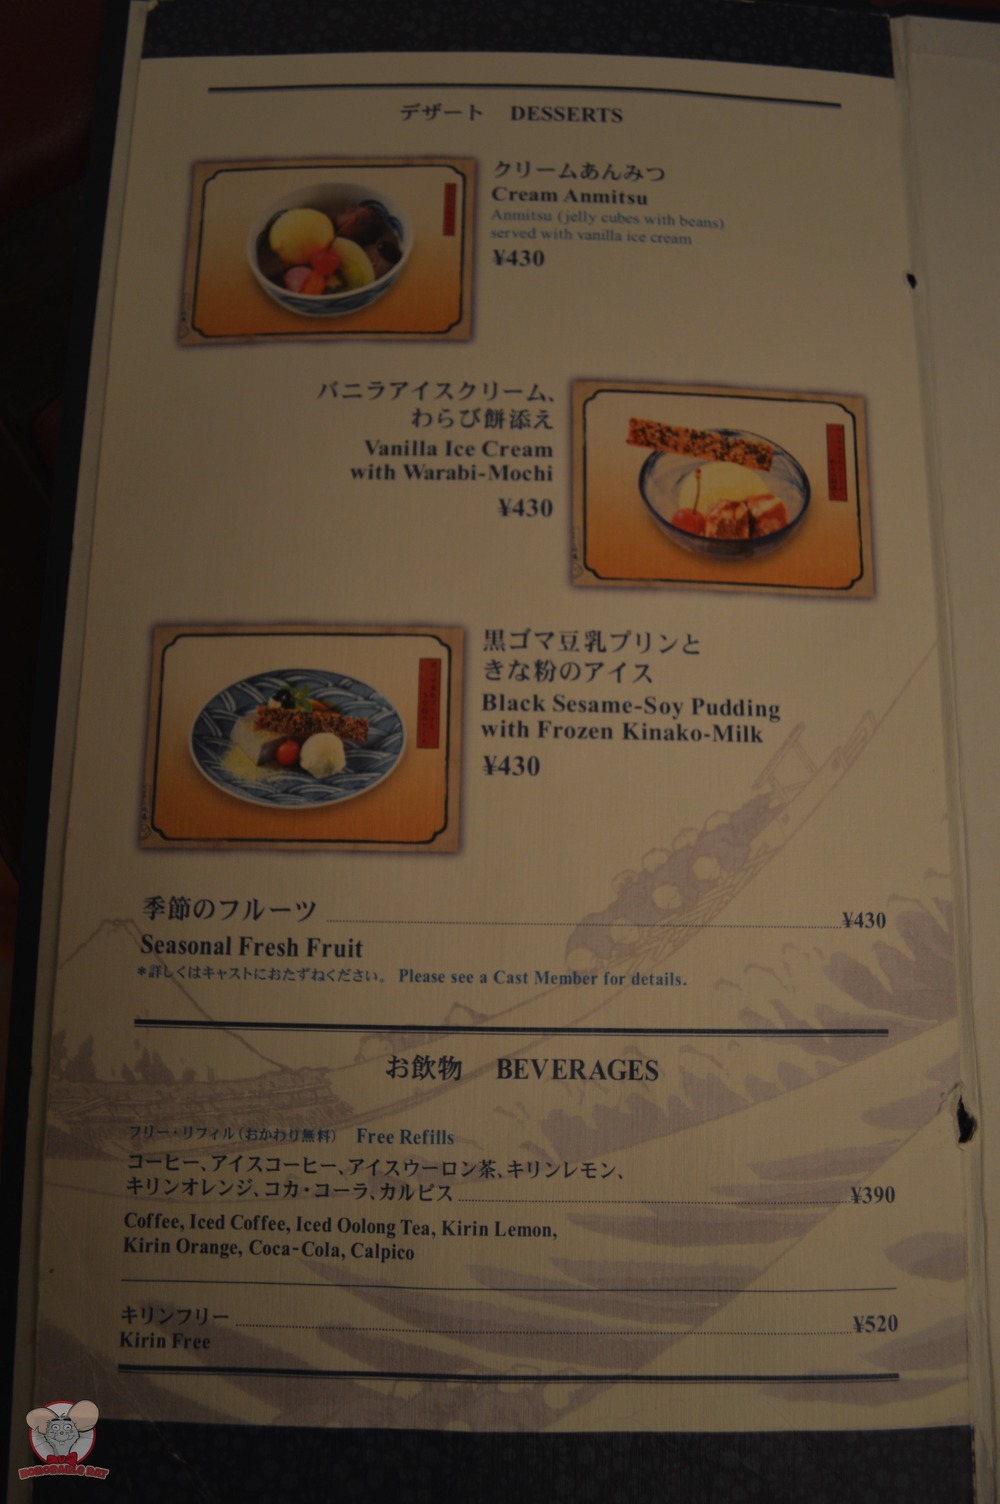 Restaurant Hokusai Menu (Dessert and Drinks)